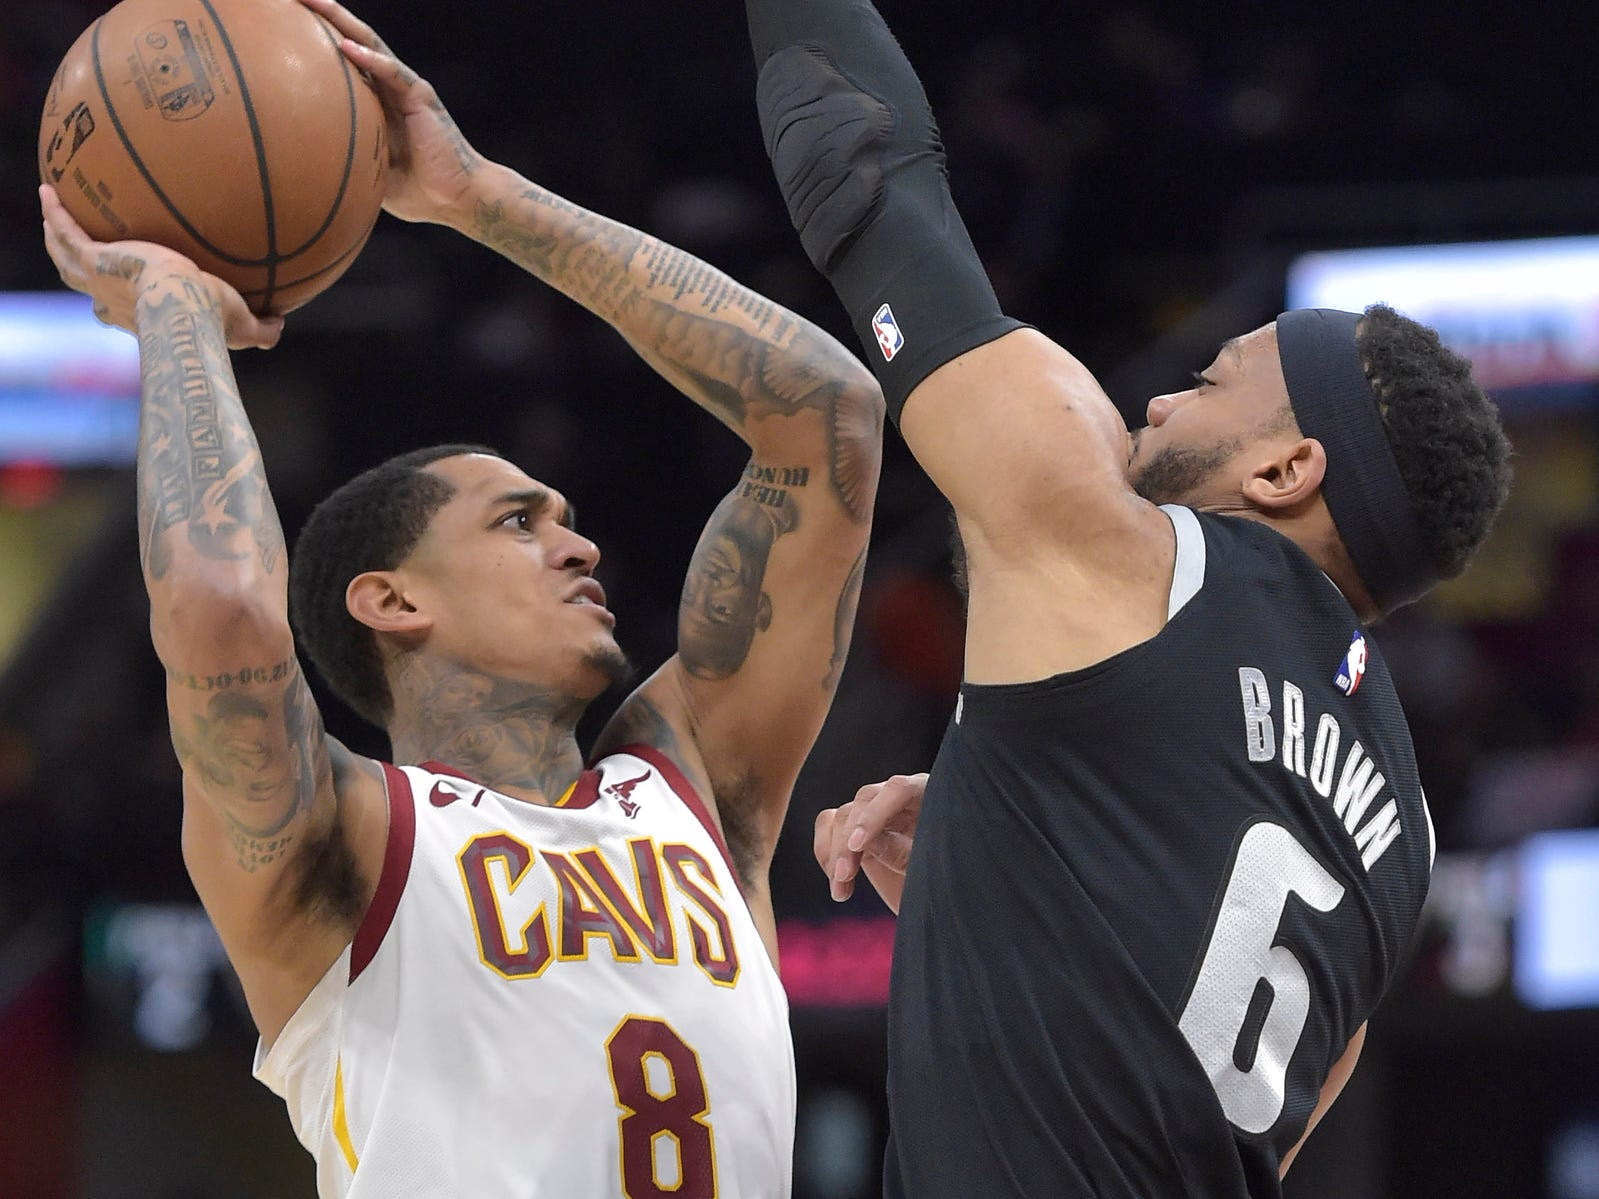 Cleveland Cavaliers guard Jordan Clarkson drives against Detroit Pistons guard Bruce Brown in the third quarter at Quicken Loans Arena, March 18, 2019.